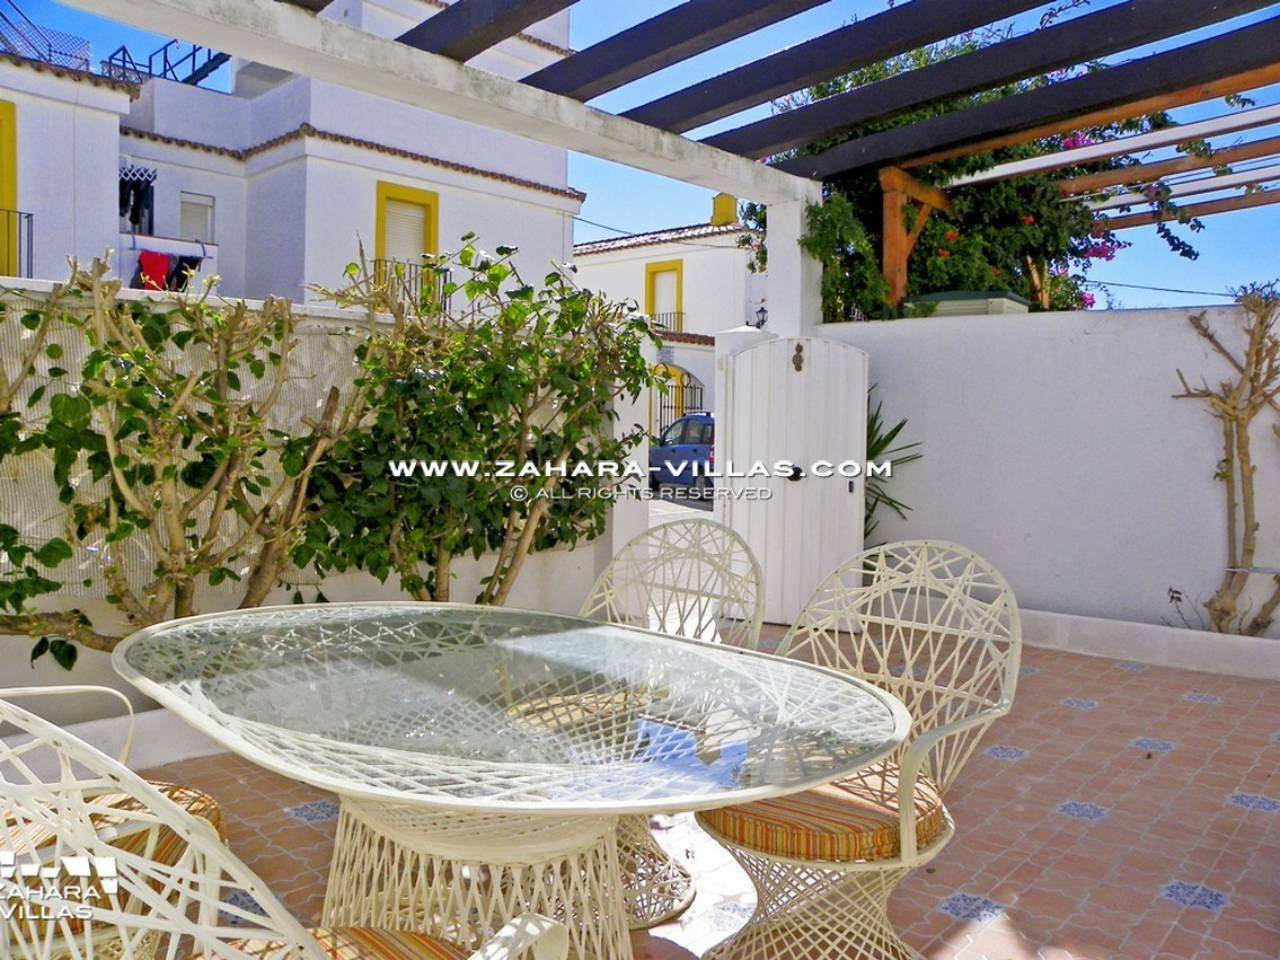 Imagen 4 de Great Townhouse in the village of Zahara de los Atunes for sale